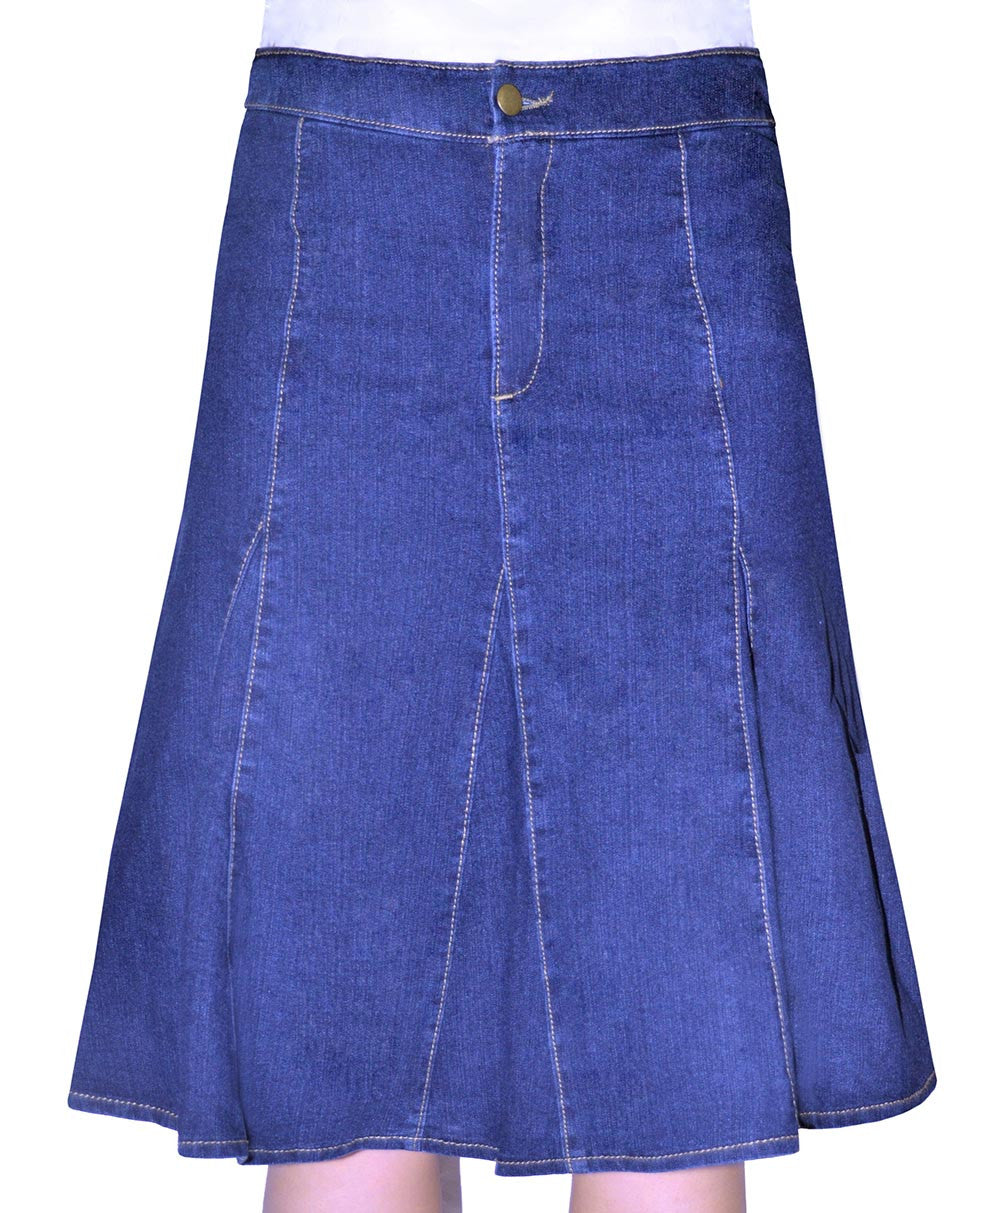 Womens Denim Skirt Flared style 1496 - The Skirt Boutique